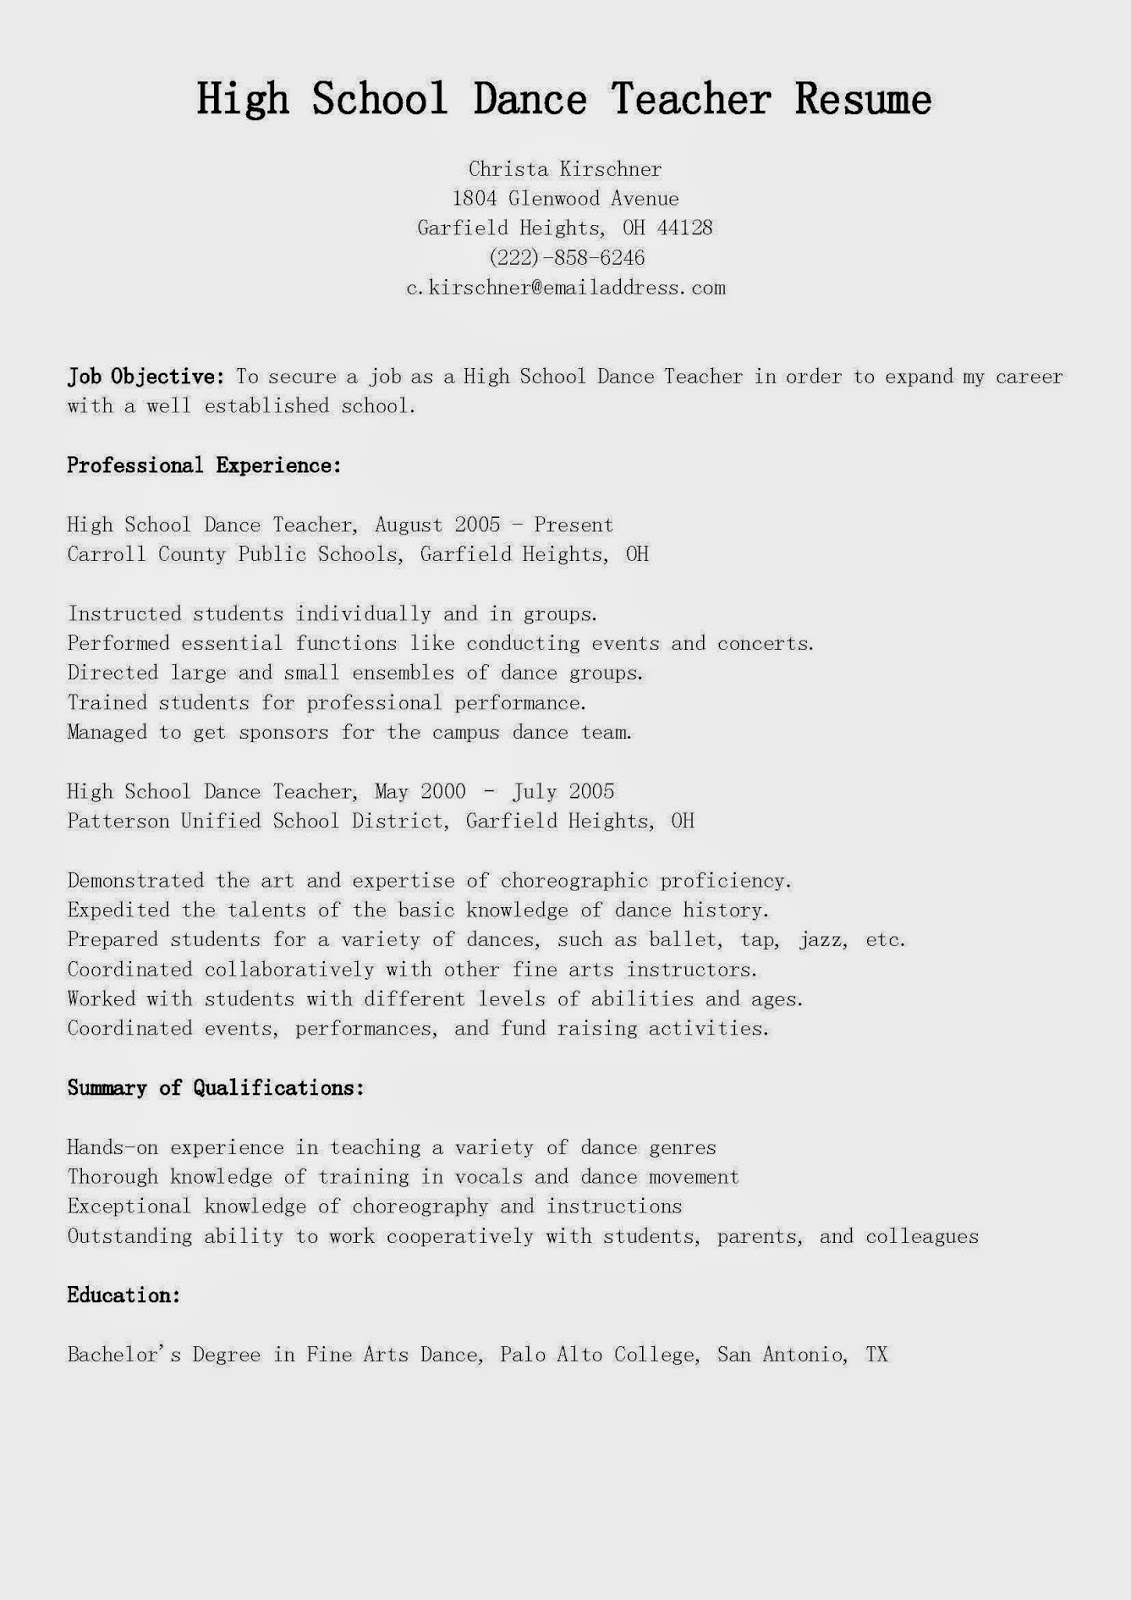 Brain case study Phineas Gage Big Picture free dance resume